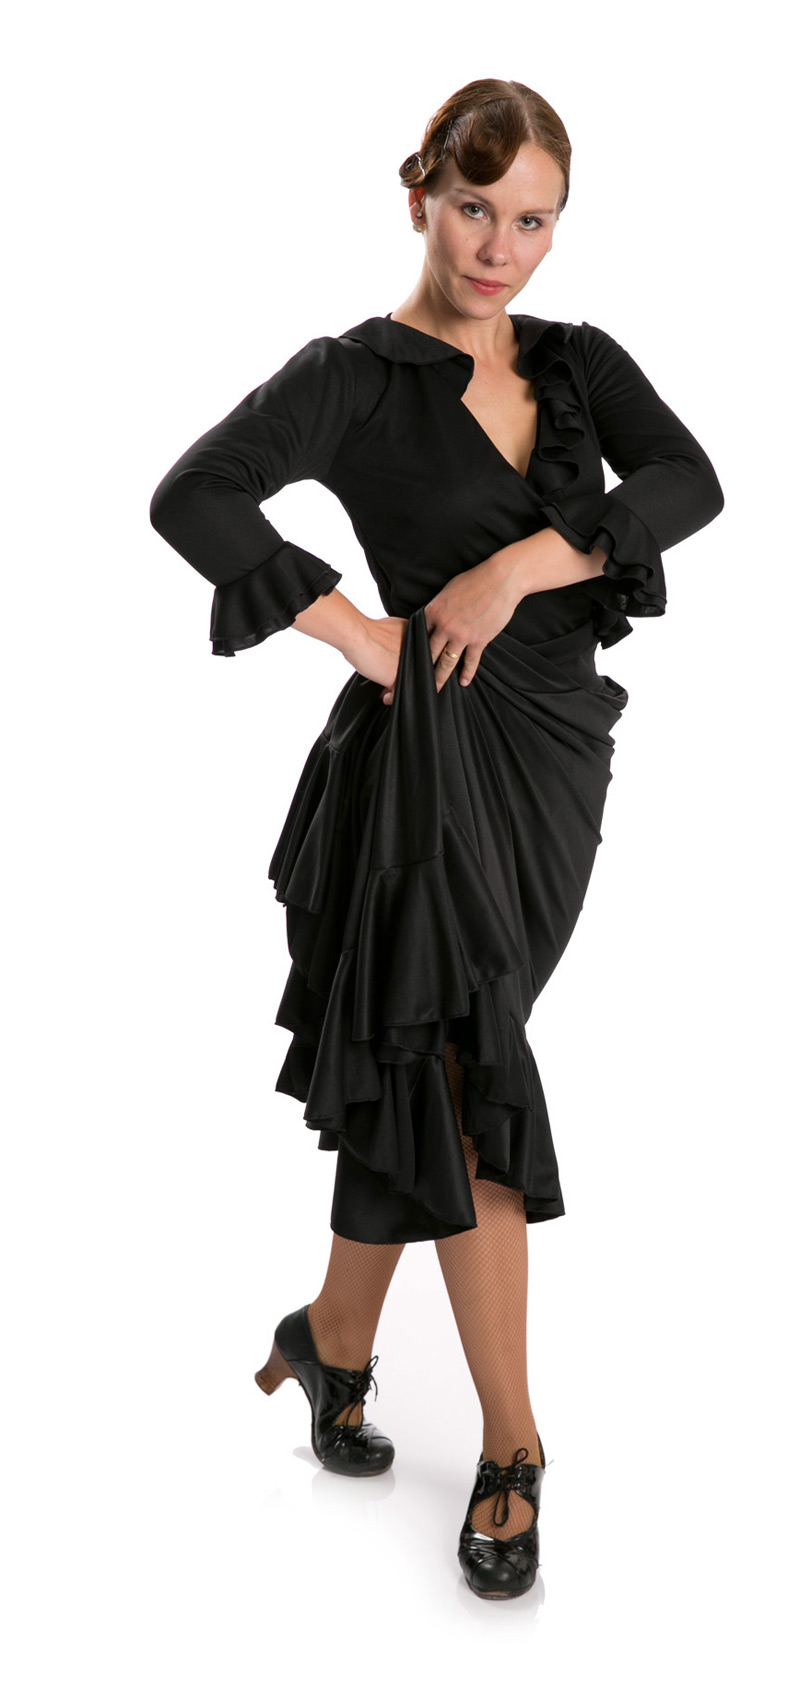 Flamenco Dance Skirt Amateur